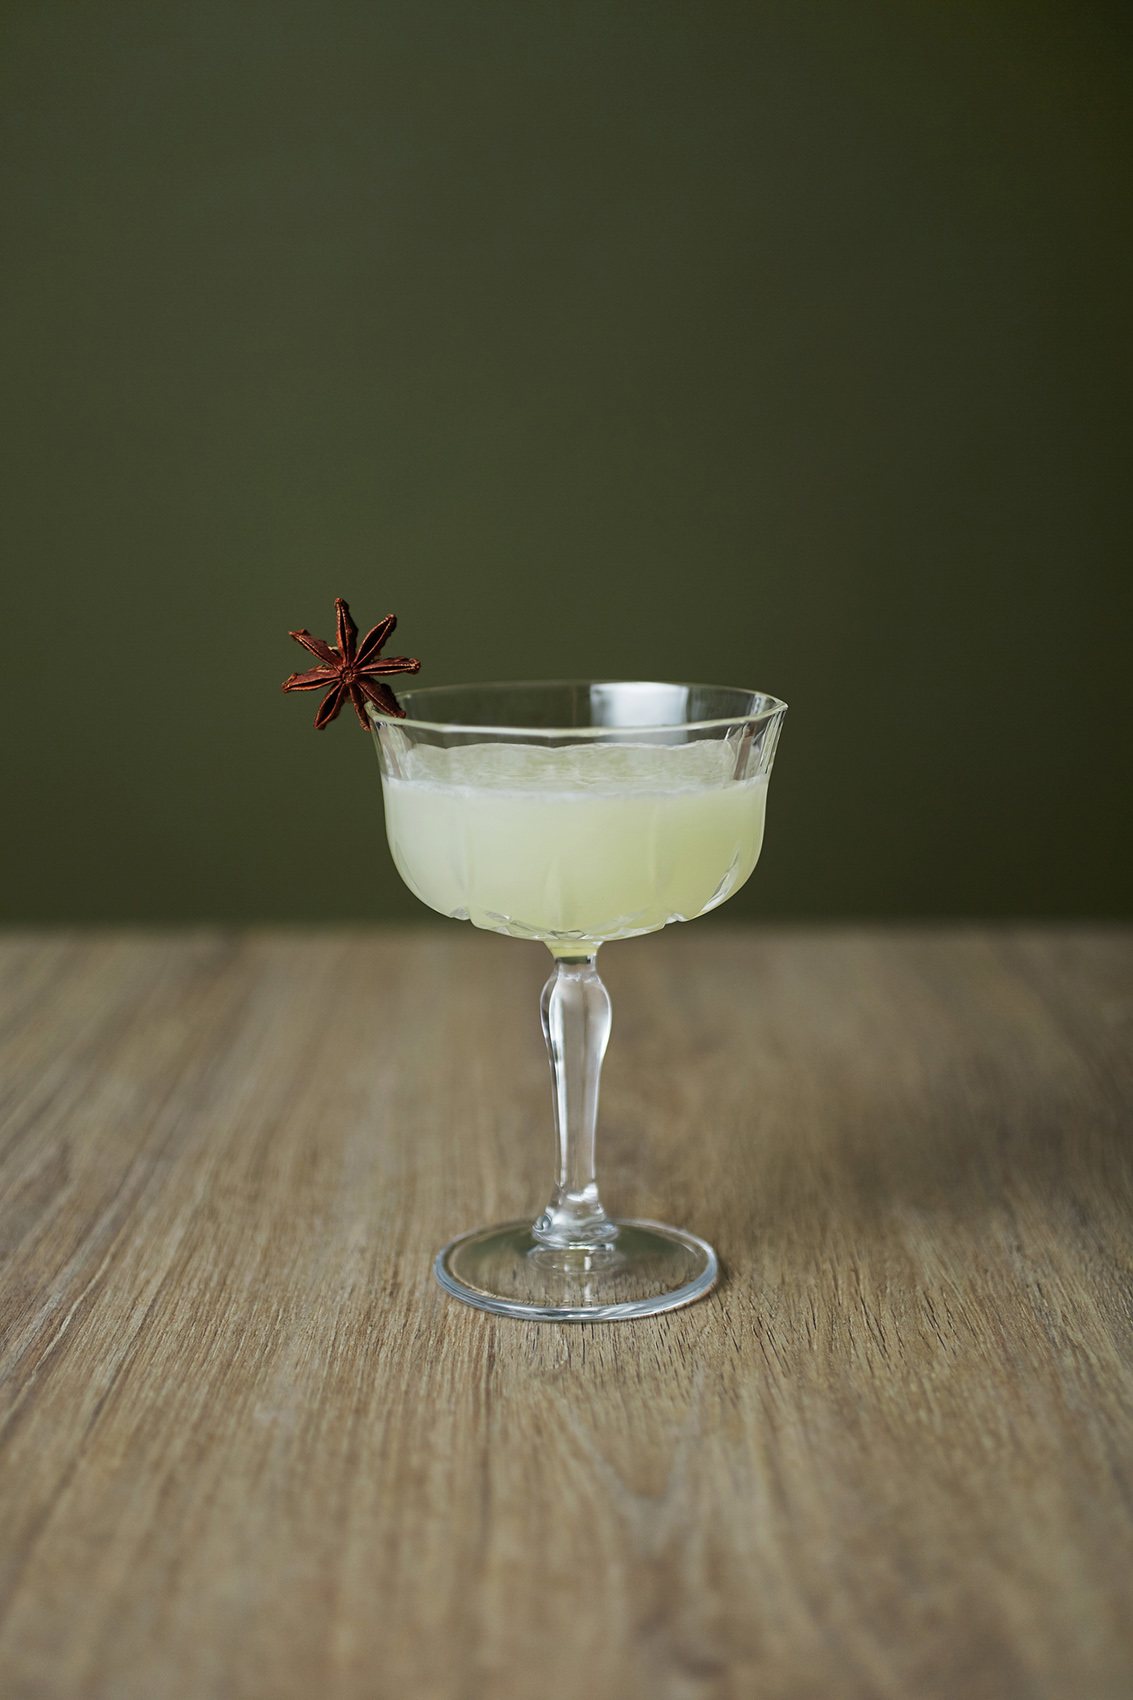 21_12_15_Cocktails_Seedlip4673_W3